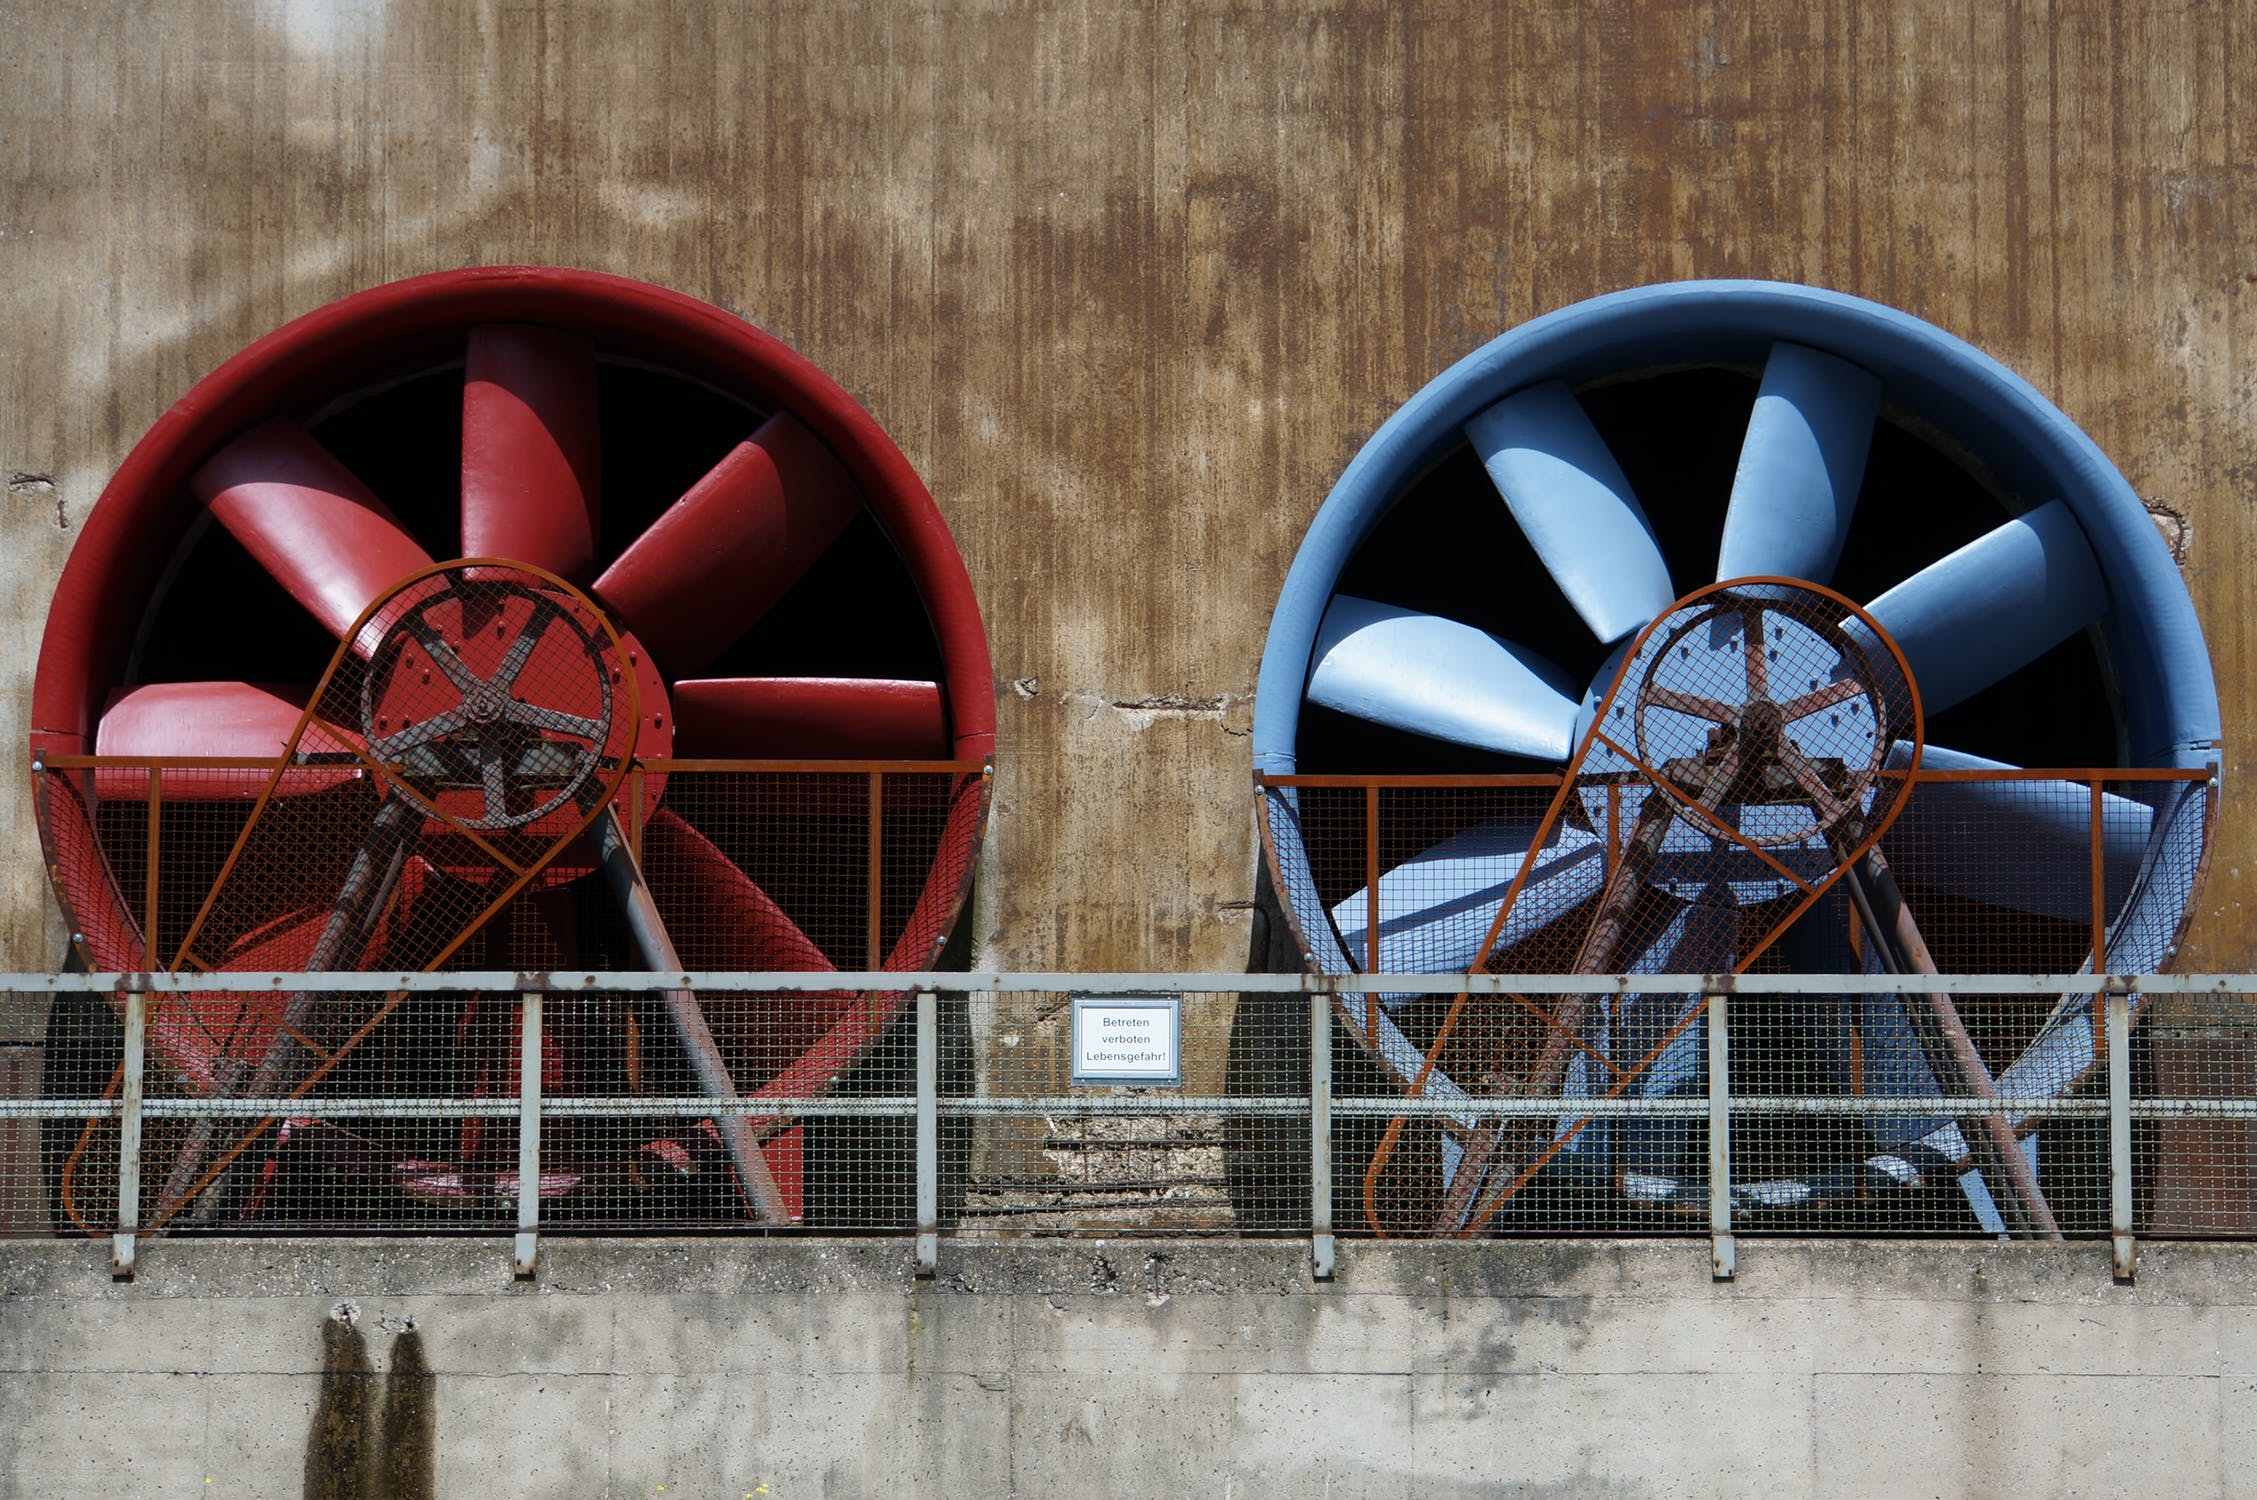 two very large industrial fans outdoors